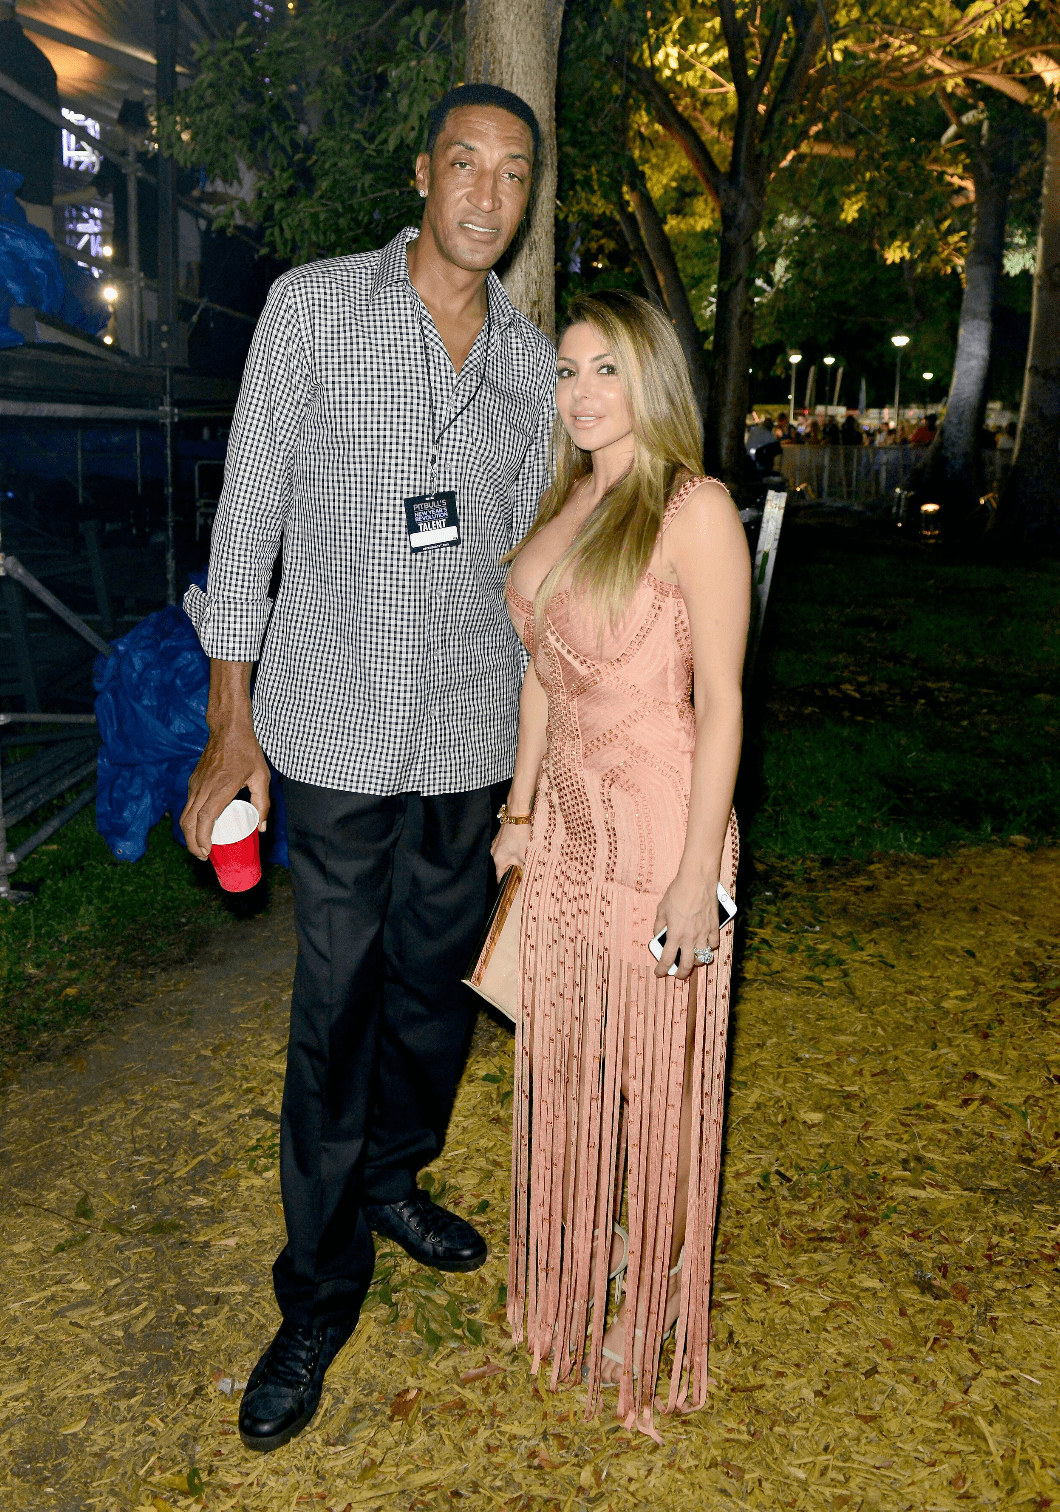 Scottie and Larsa Pippen at the Pitbulls New Years Eve Revolution in Miami in 2015 | Source: Getty Images